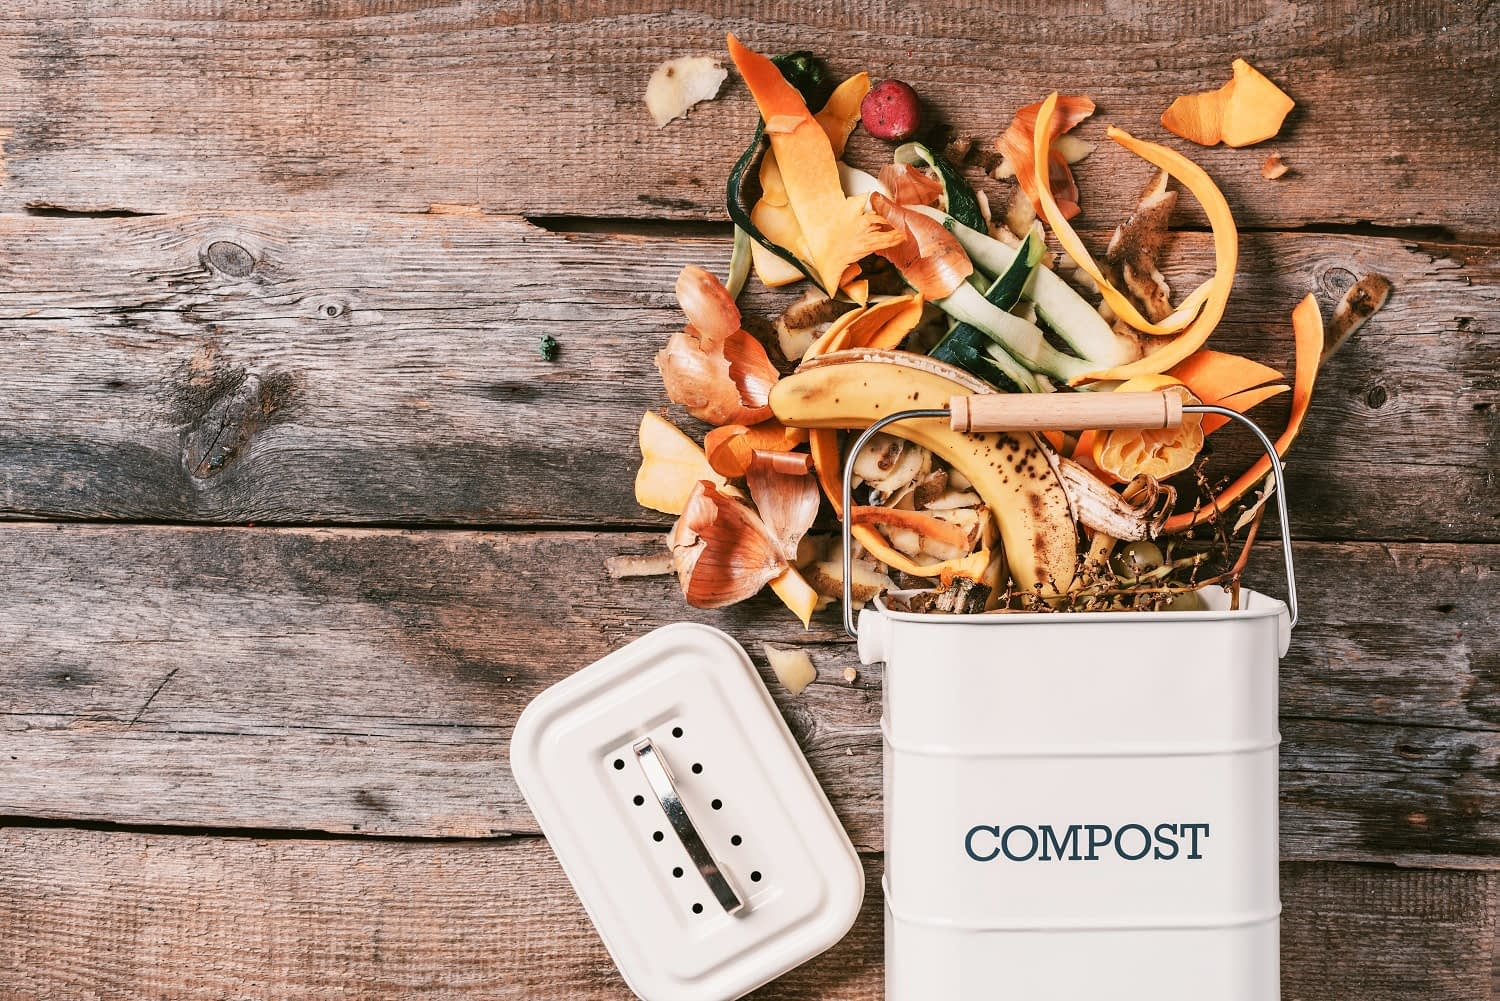 compost bin with food scraps coming out